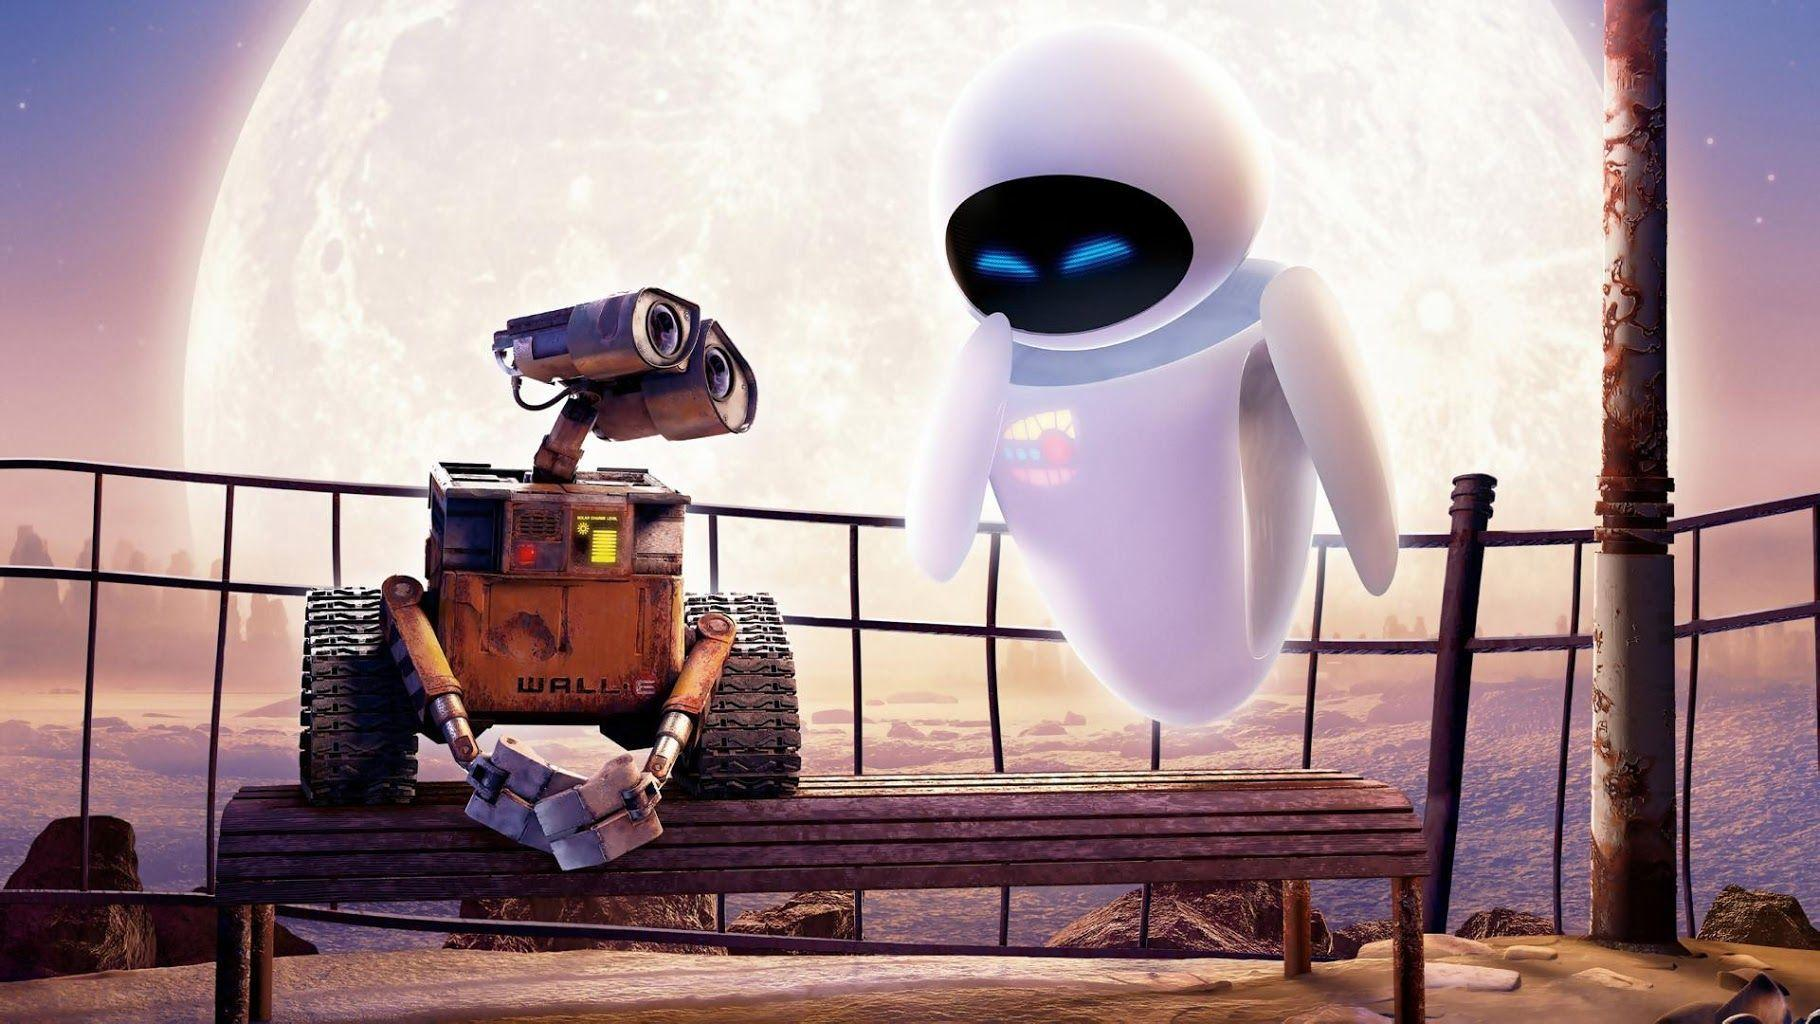 WALL.E Wallpapers Download